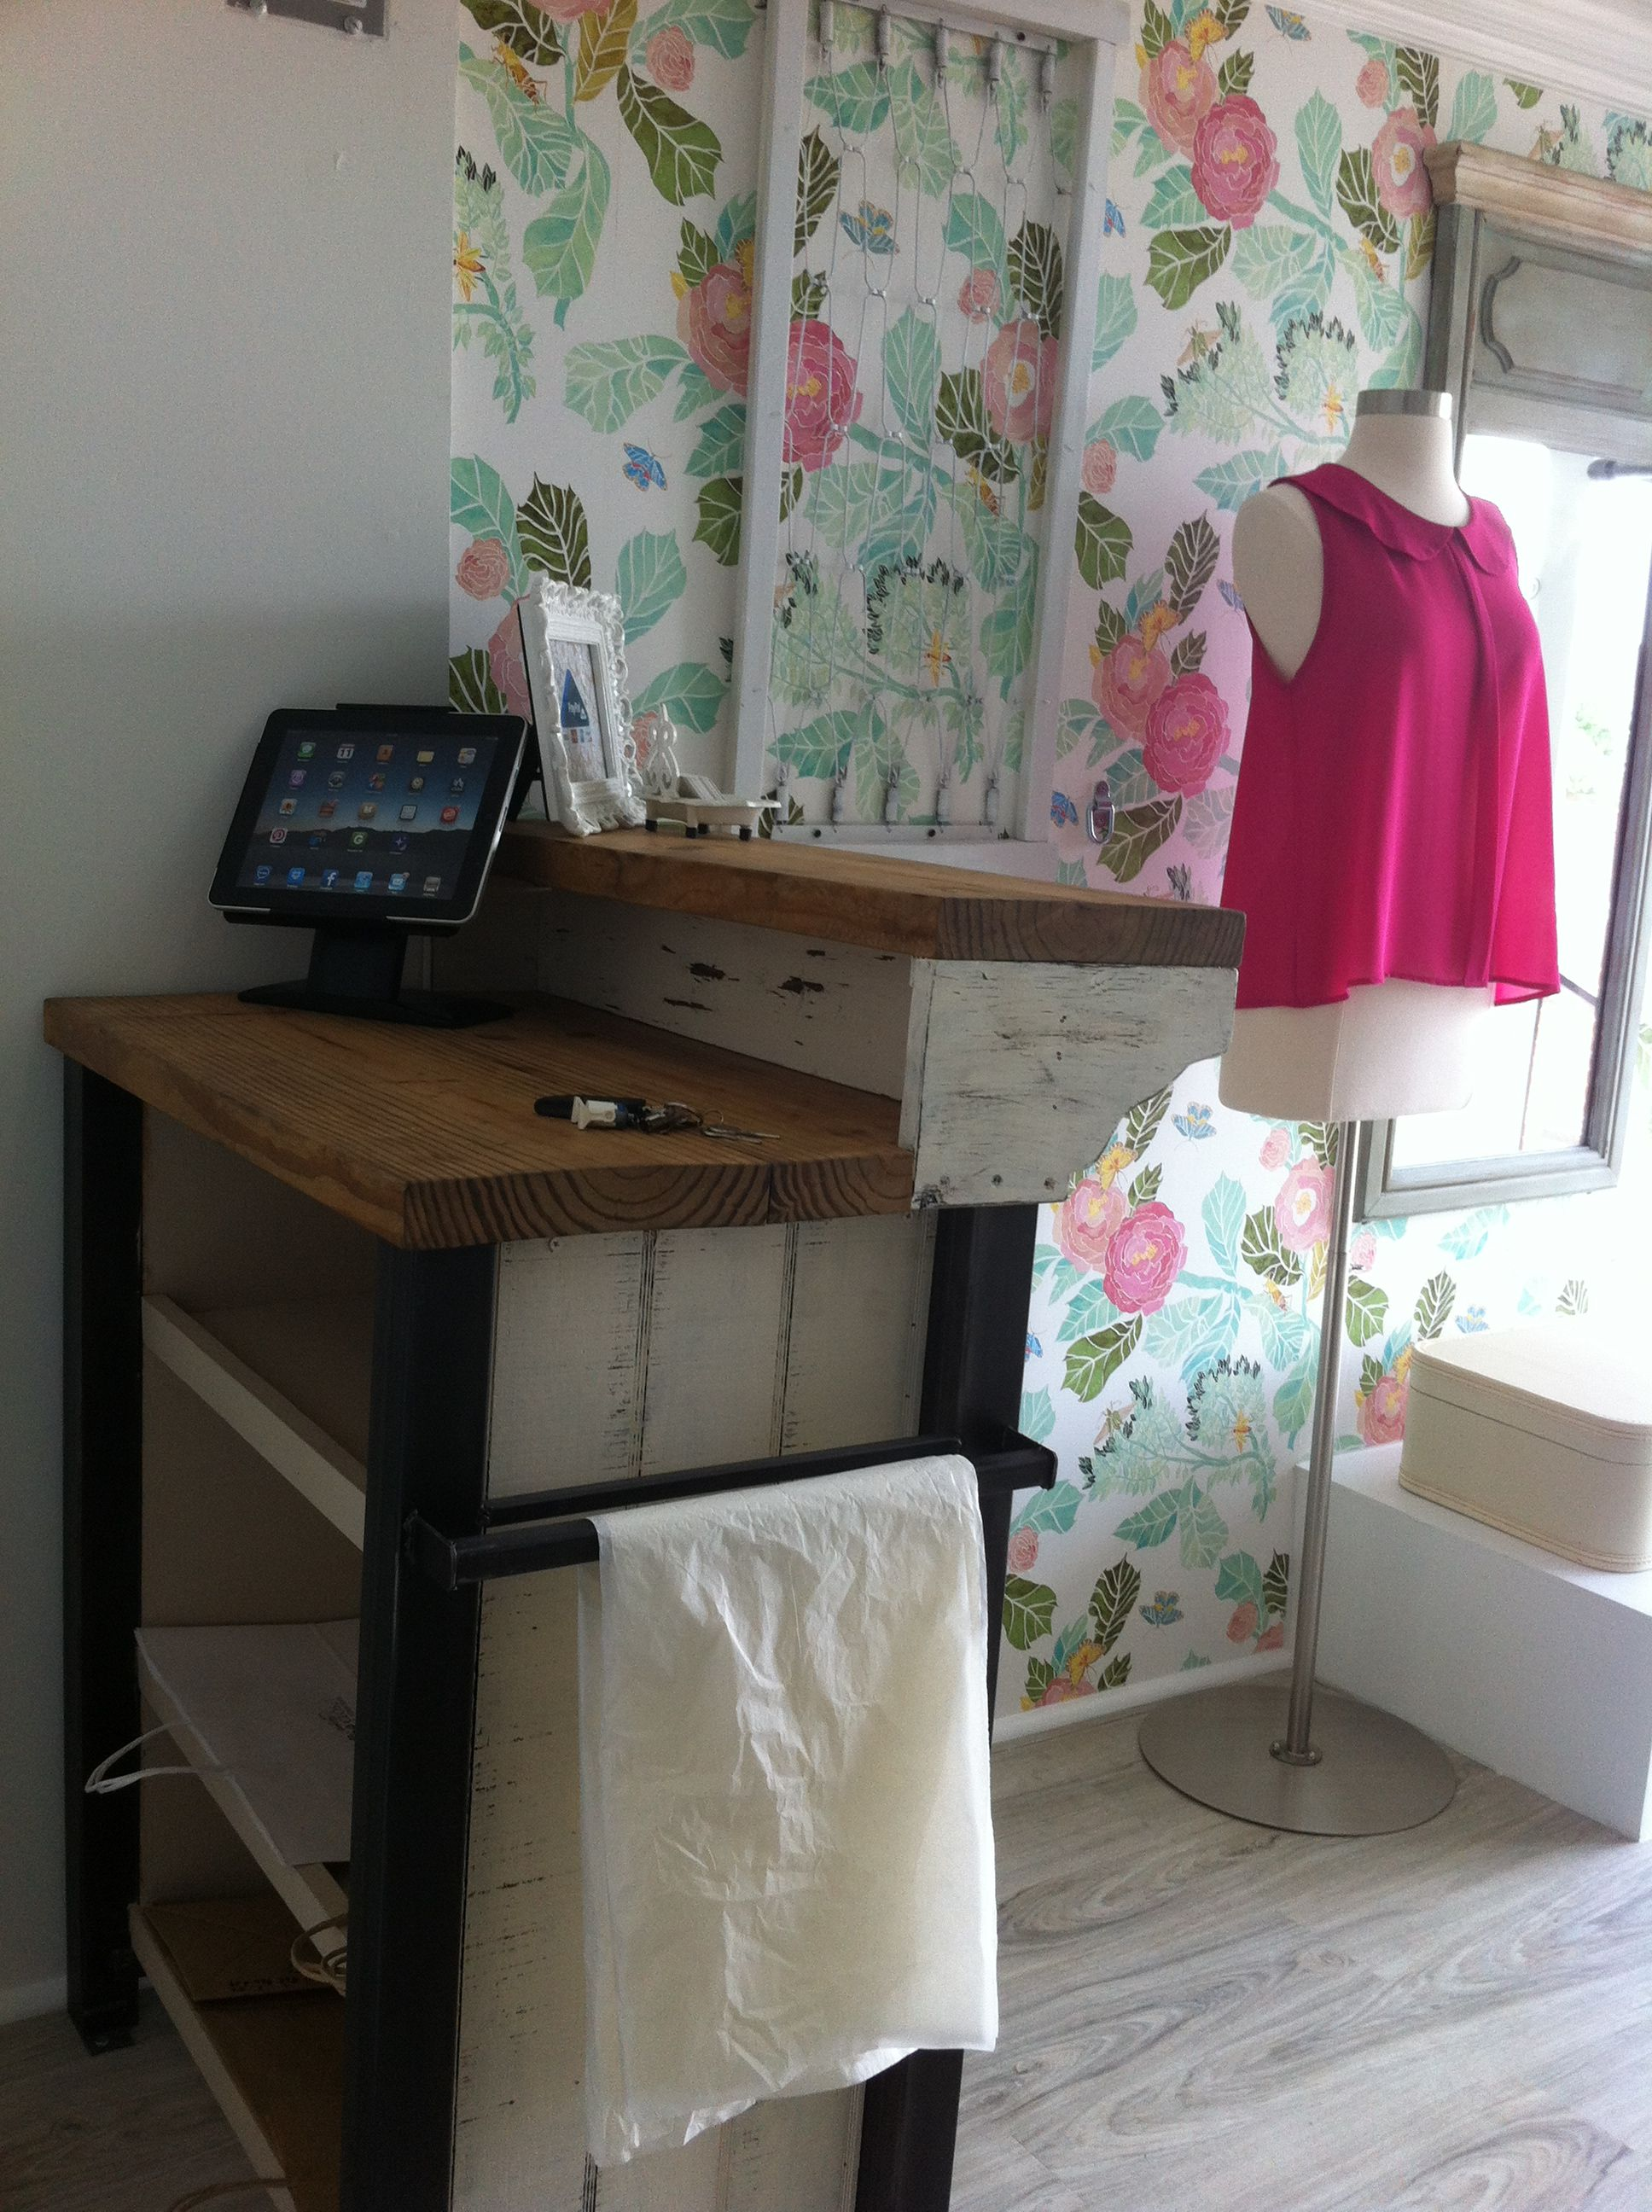 I design this cash counter comptoir caisse pinterest - Comptoir caisse pour institut de beaute ...